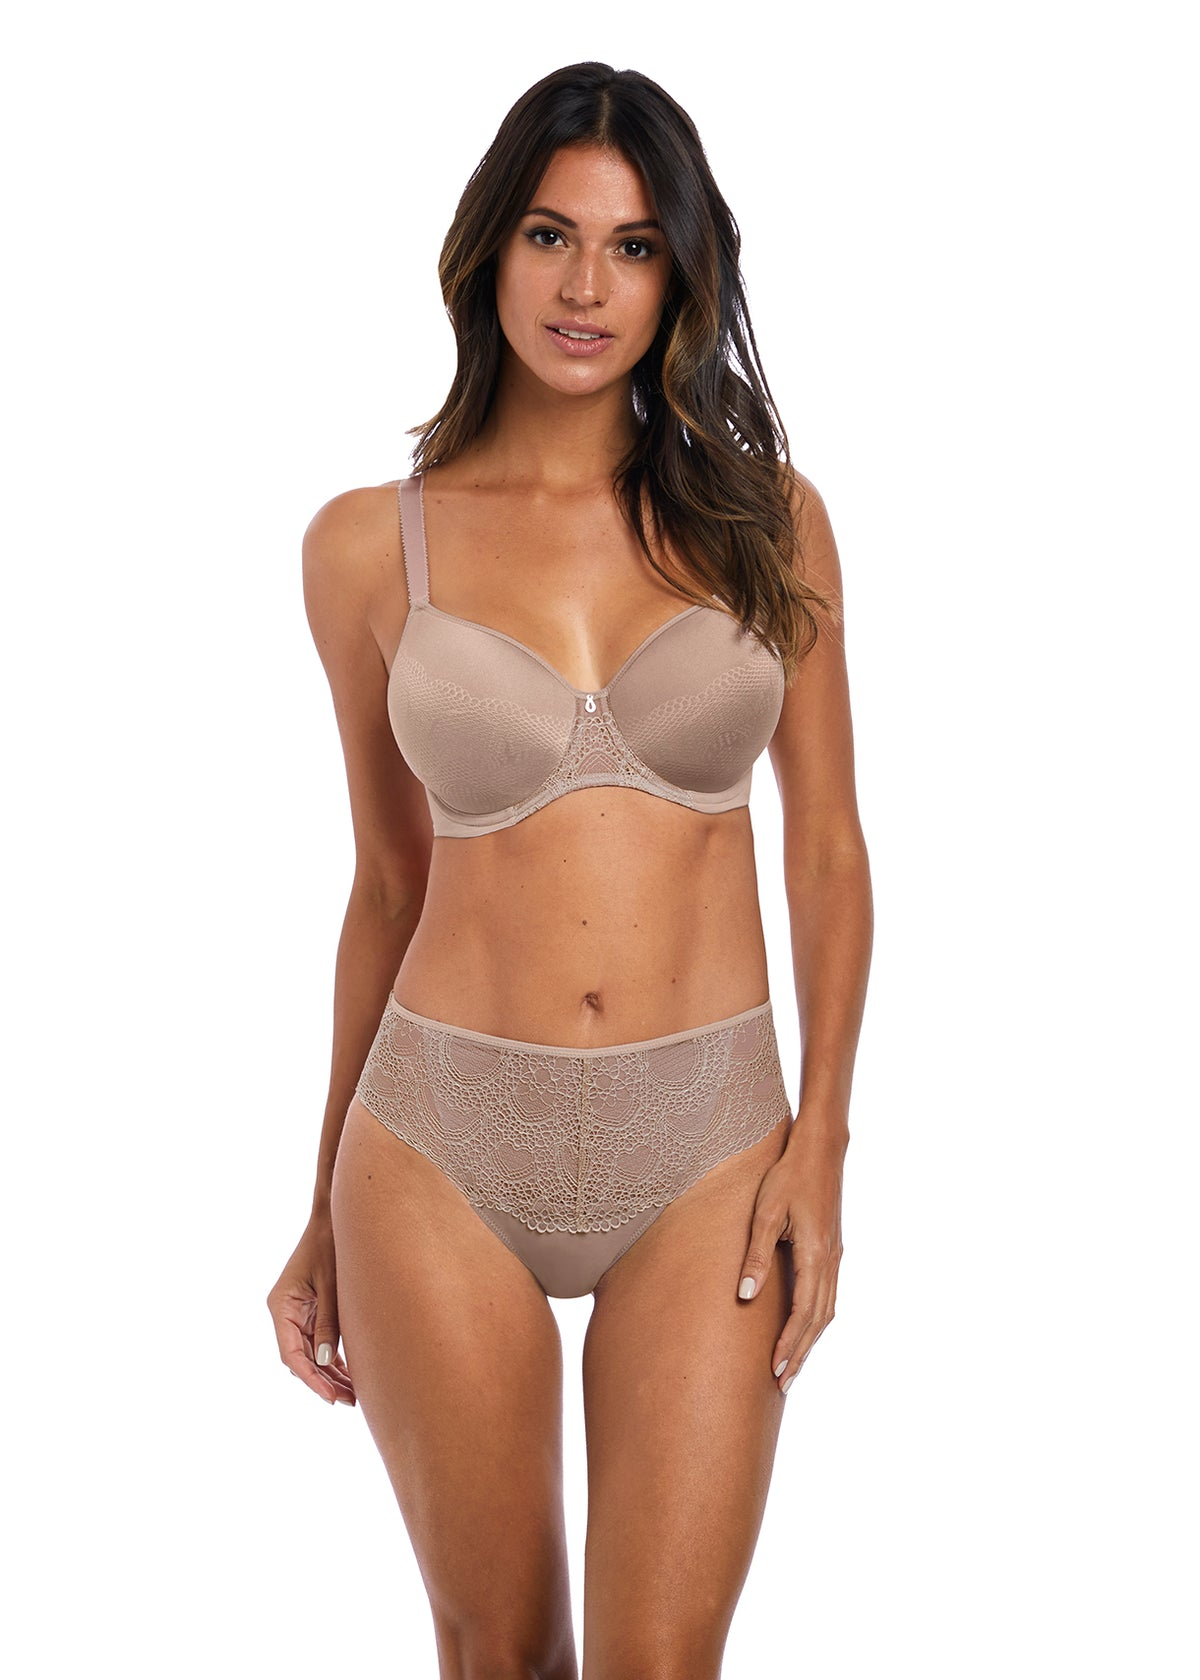 FL2541 Twilight UW Rebecca Spacer Full Cup Bra |FAWN & INK|